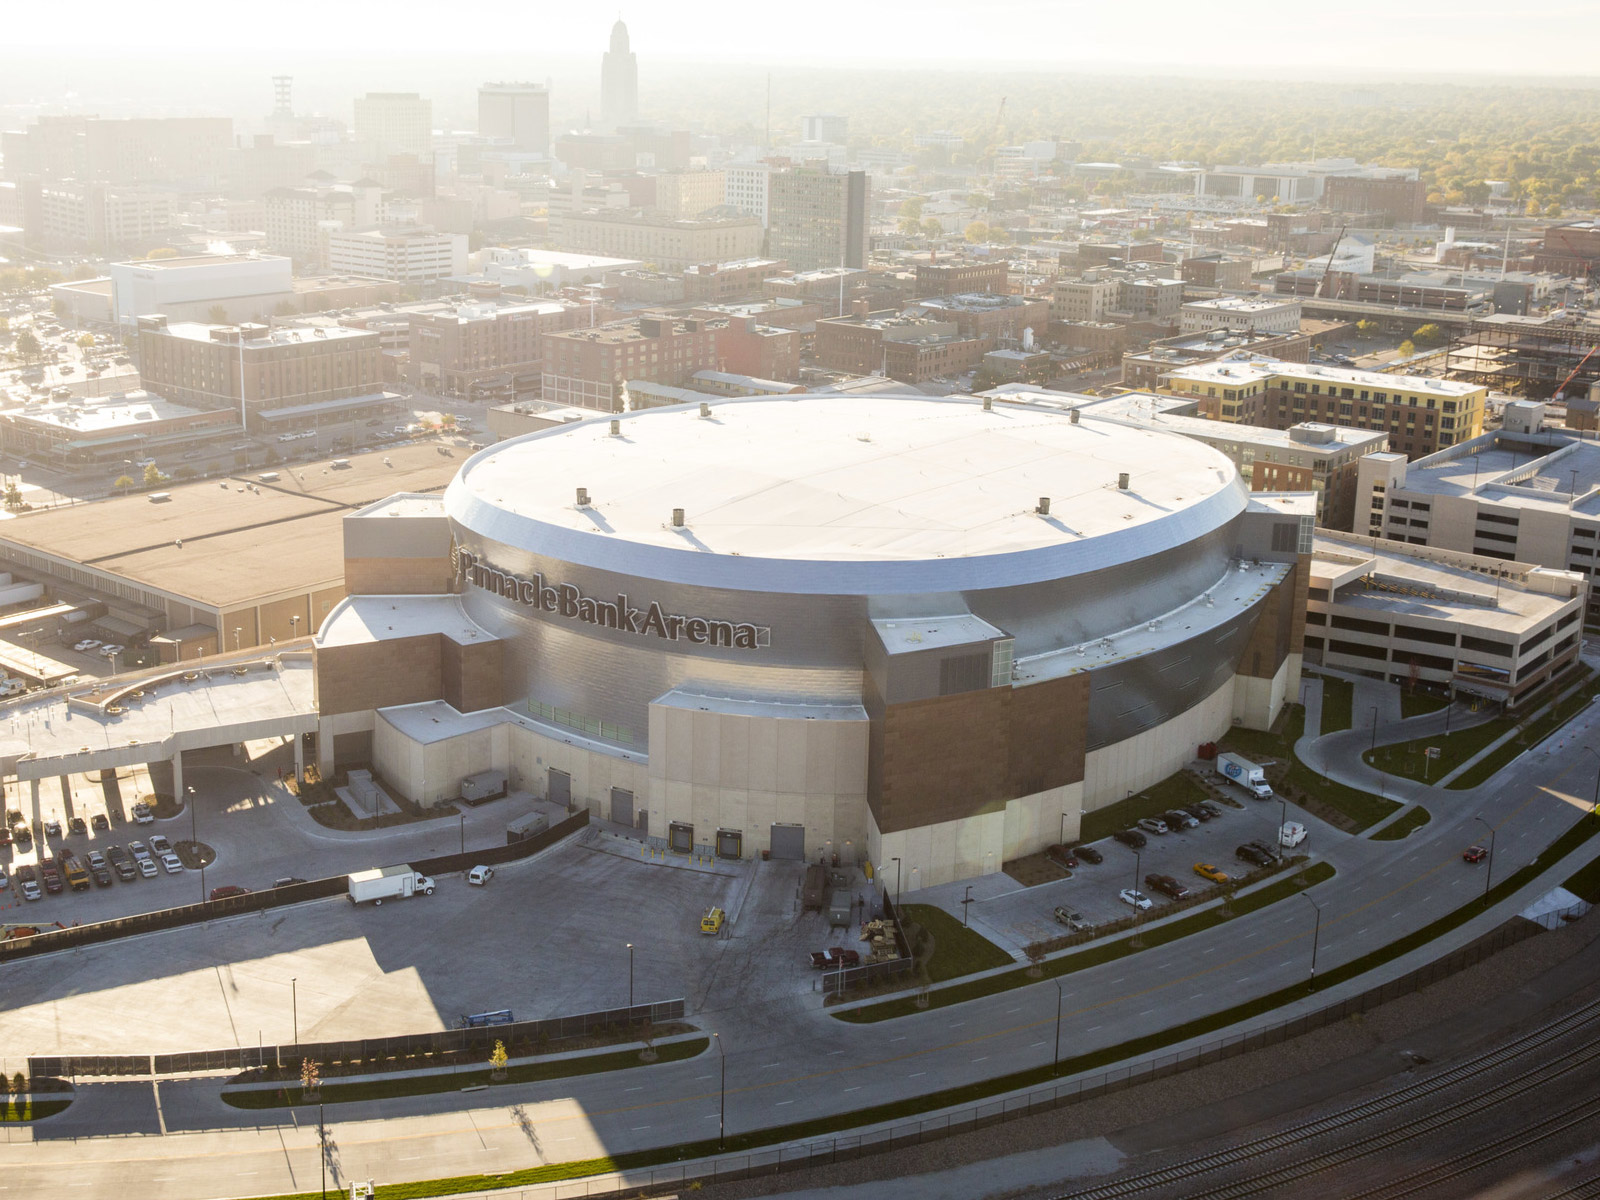 Pinnacle Bank Arena aerial shot